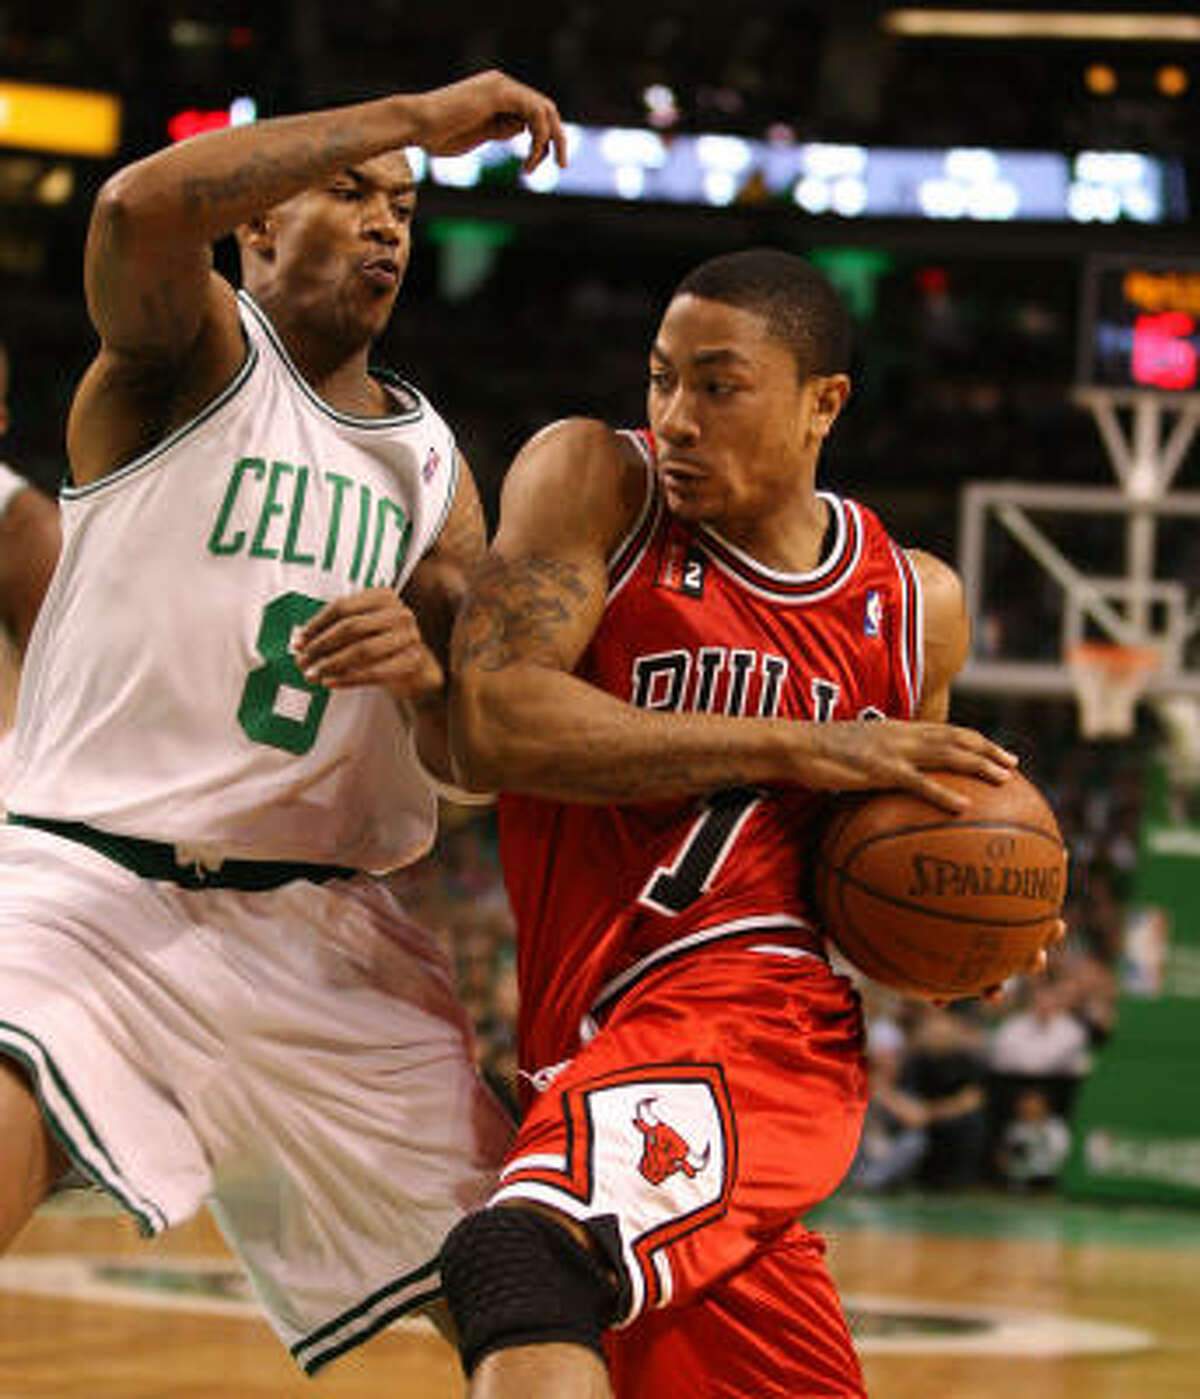 Chicago's Derrick Rose drives to the basket while being guarded by Boston's Stephon Marbury during the first quarter.